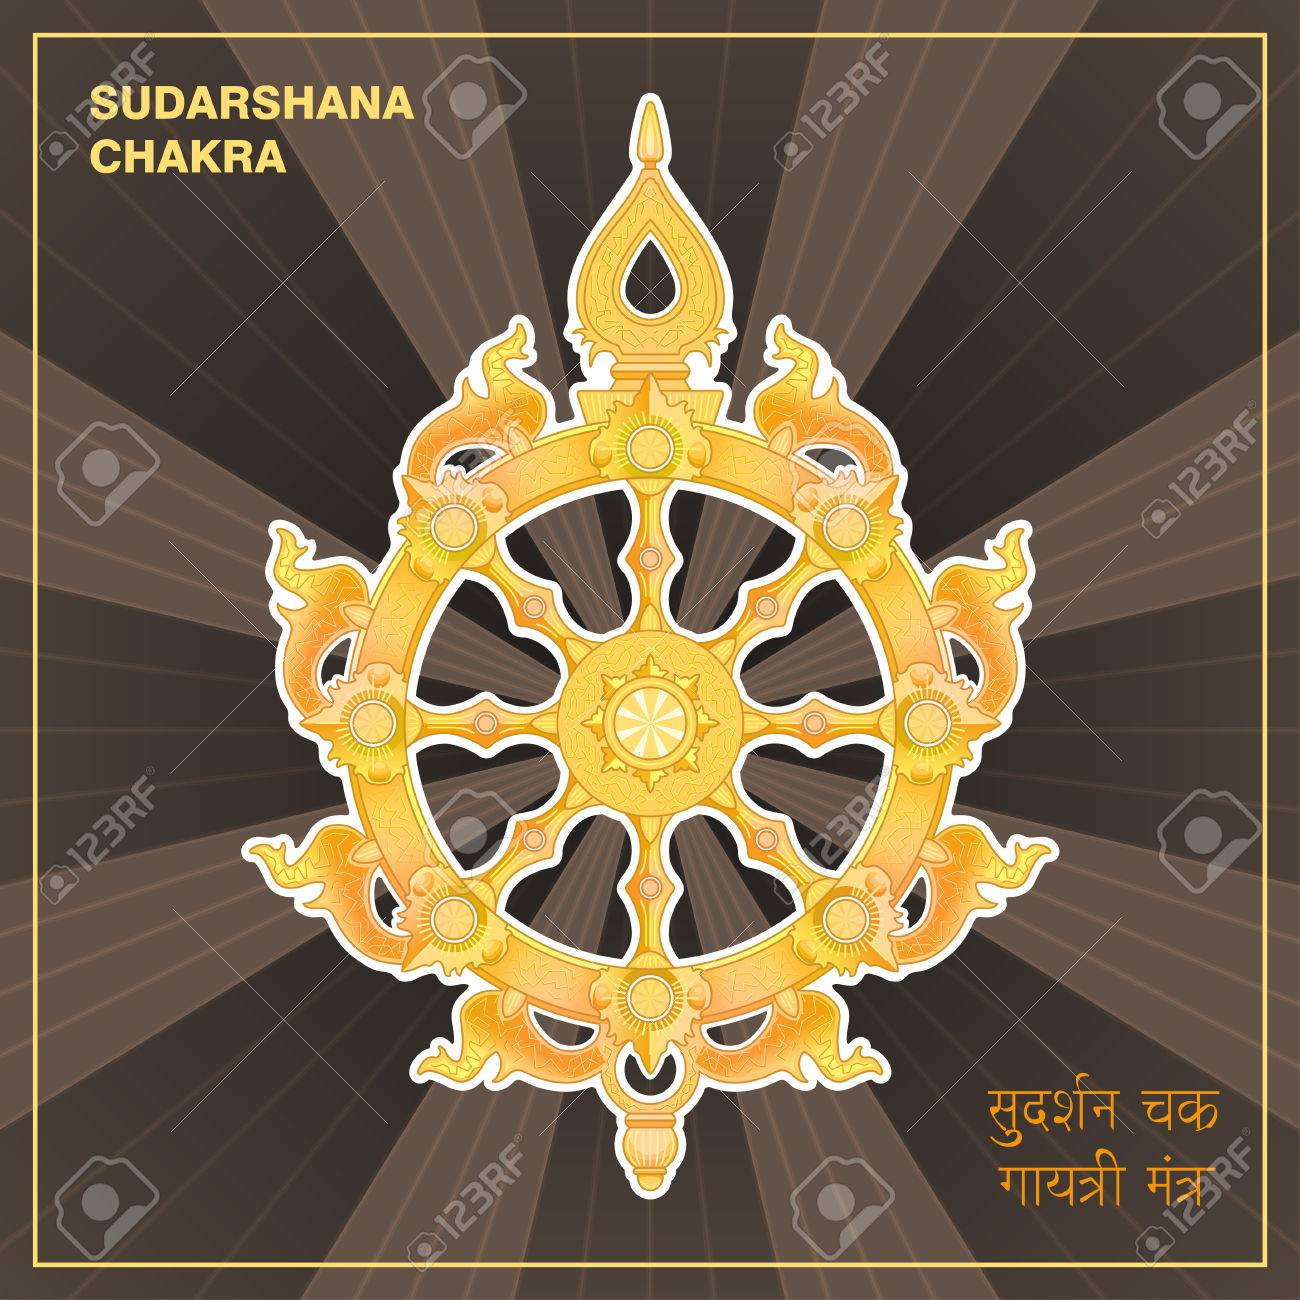 Sudarshan Chakra Decal Fiery Disc Attribute Weapon Of Lord